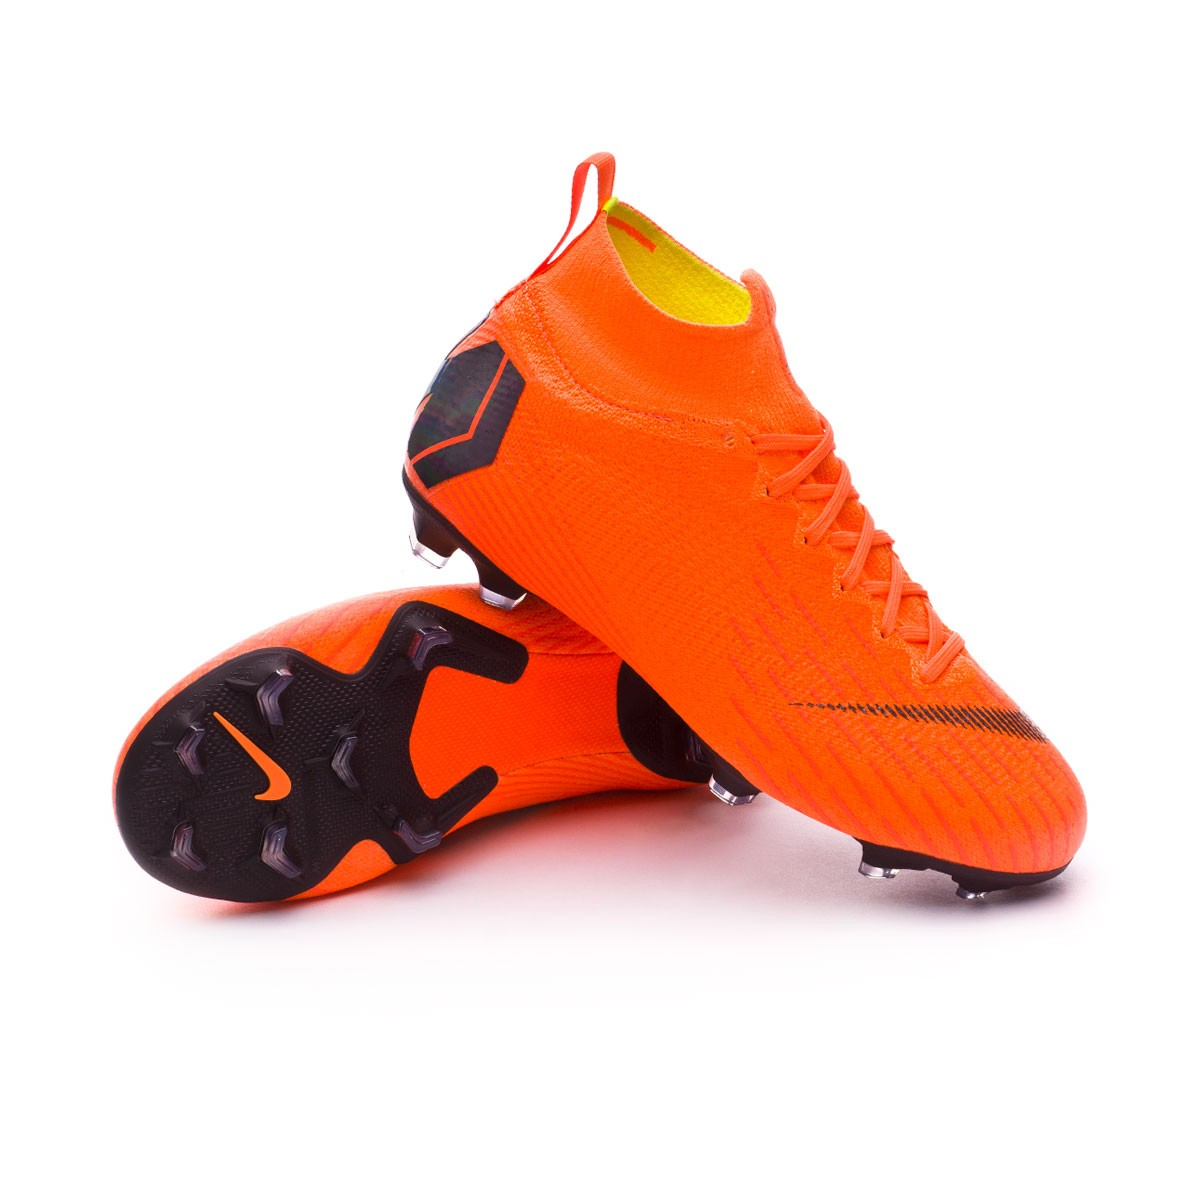 b4c56aab6f1e Football Boots Nike Kids Mercurial Superfly VI Elite FG Total orange ...